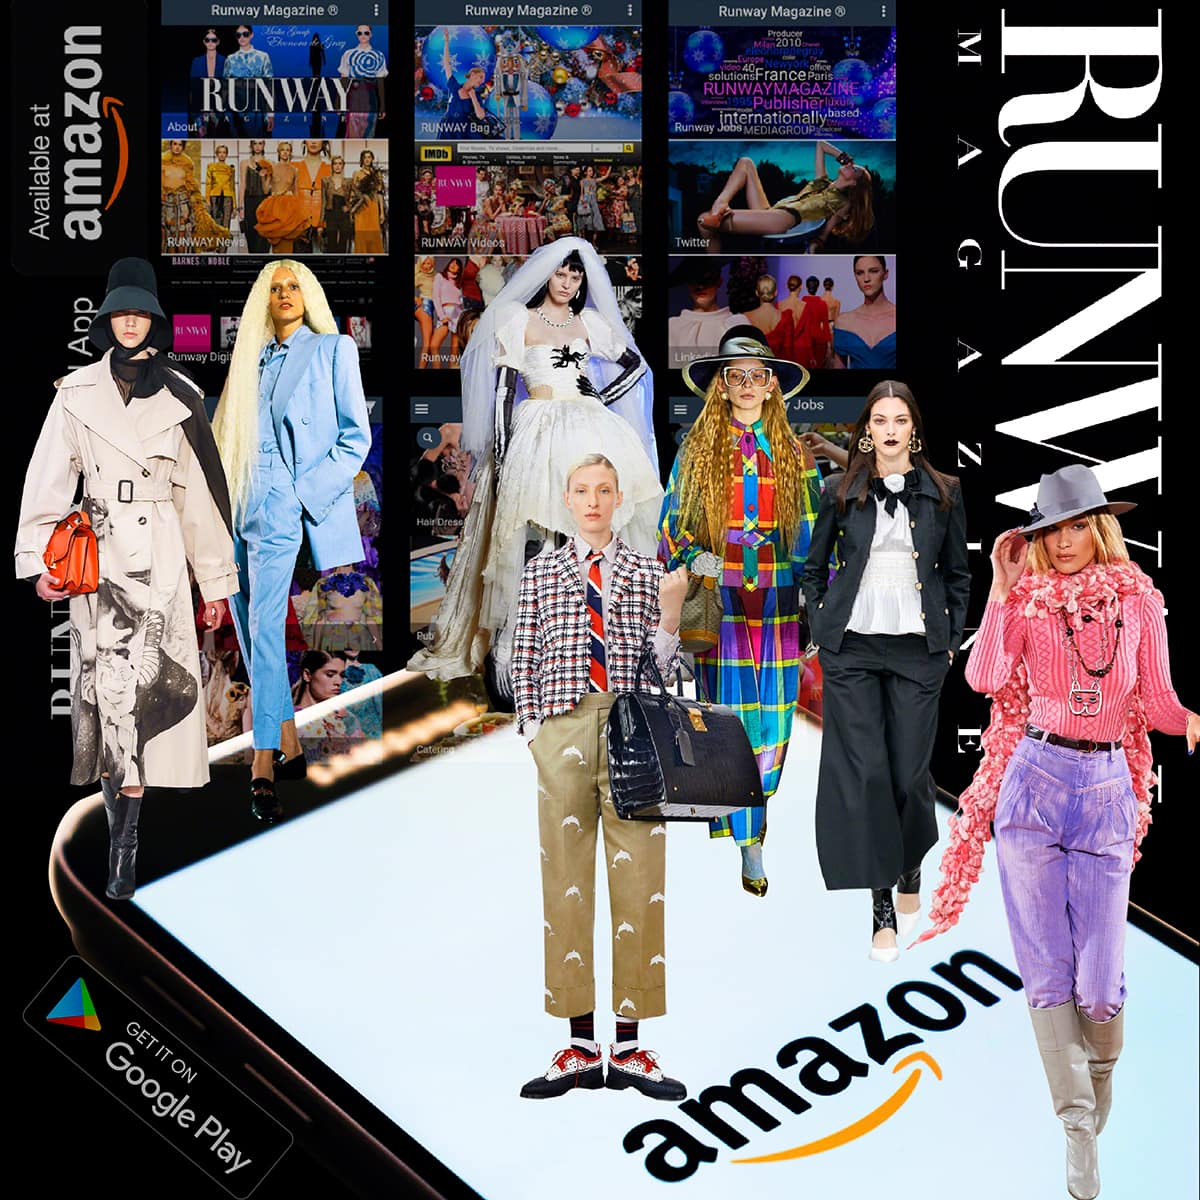 RUNWAY MAGAZINE application for android on Google Play and Amazon